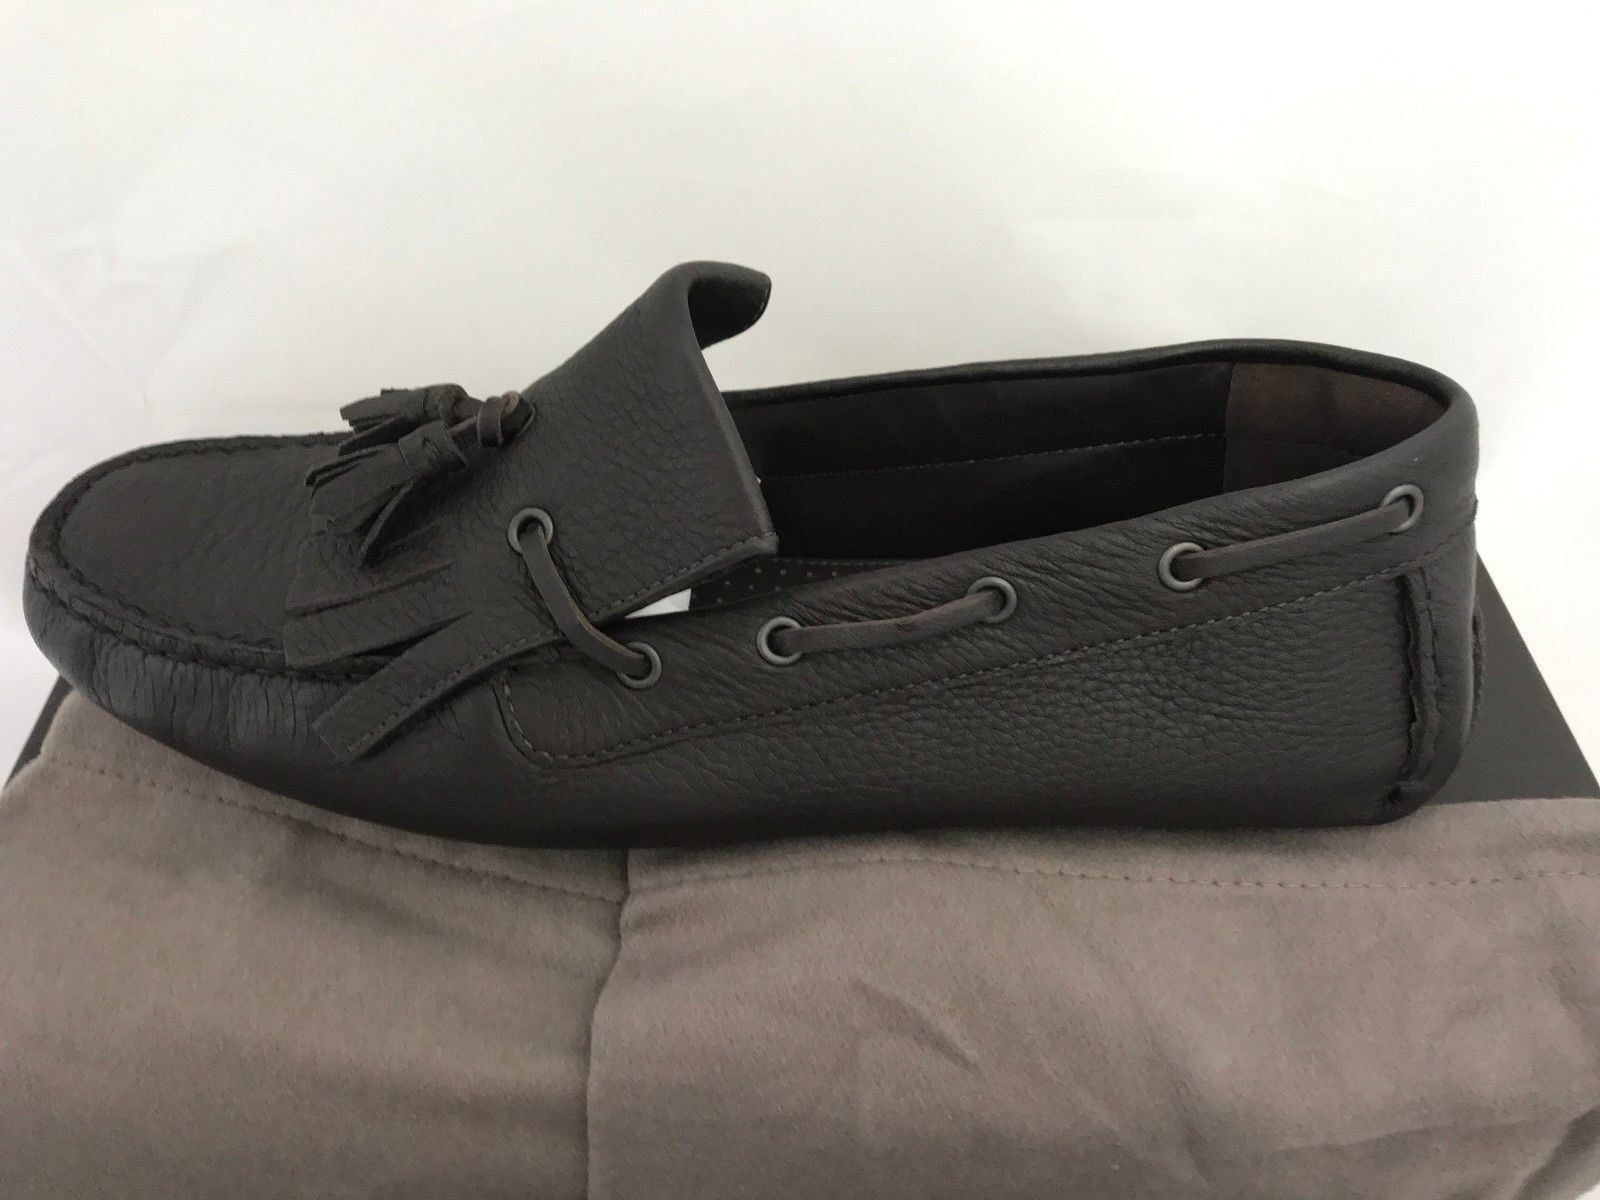 NIB $660 Bottega Veneta Mens Leather Driver Shoes Loafers Brown 8.5 US (41.5 Eu) - BAYSUPERSTORE